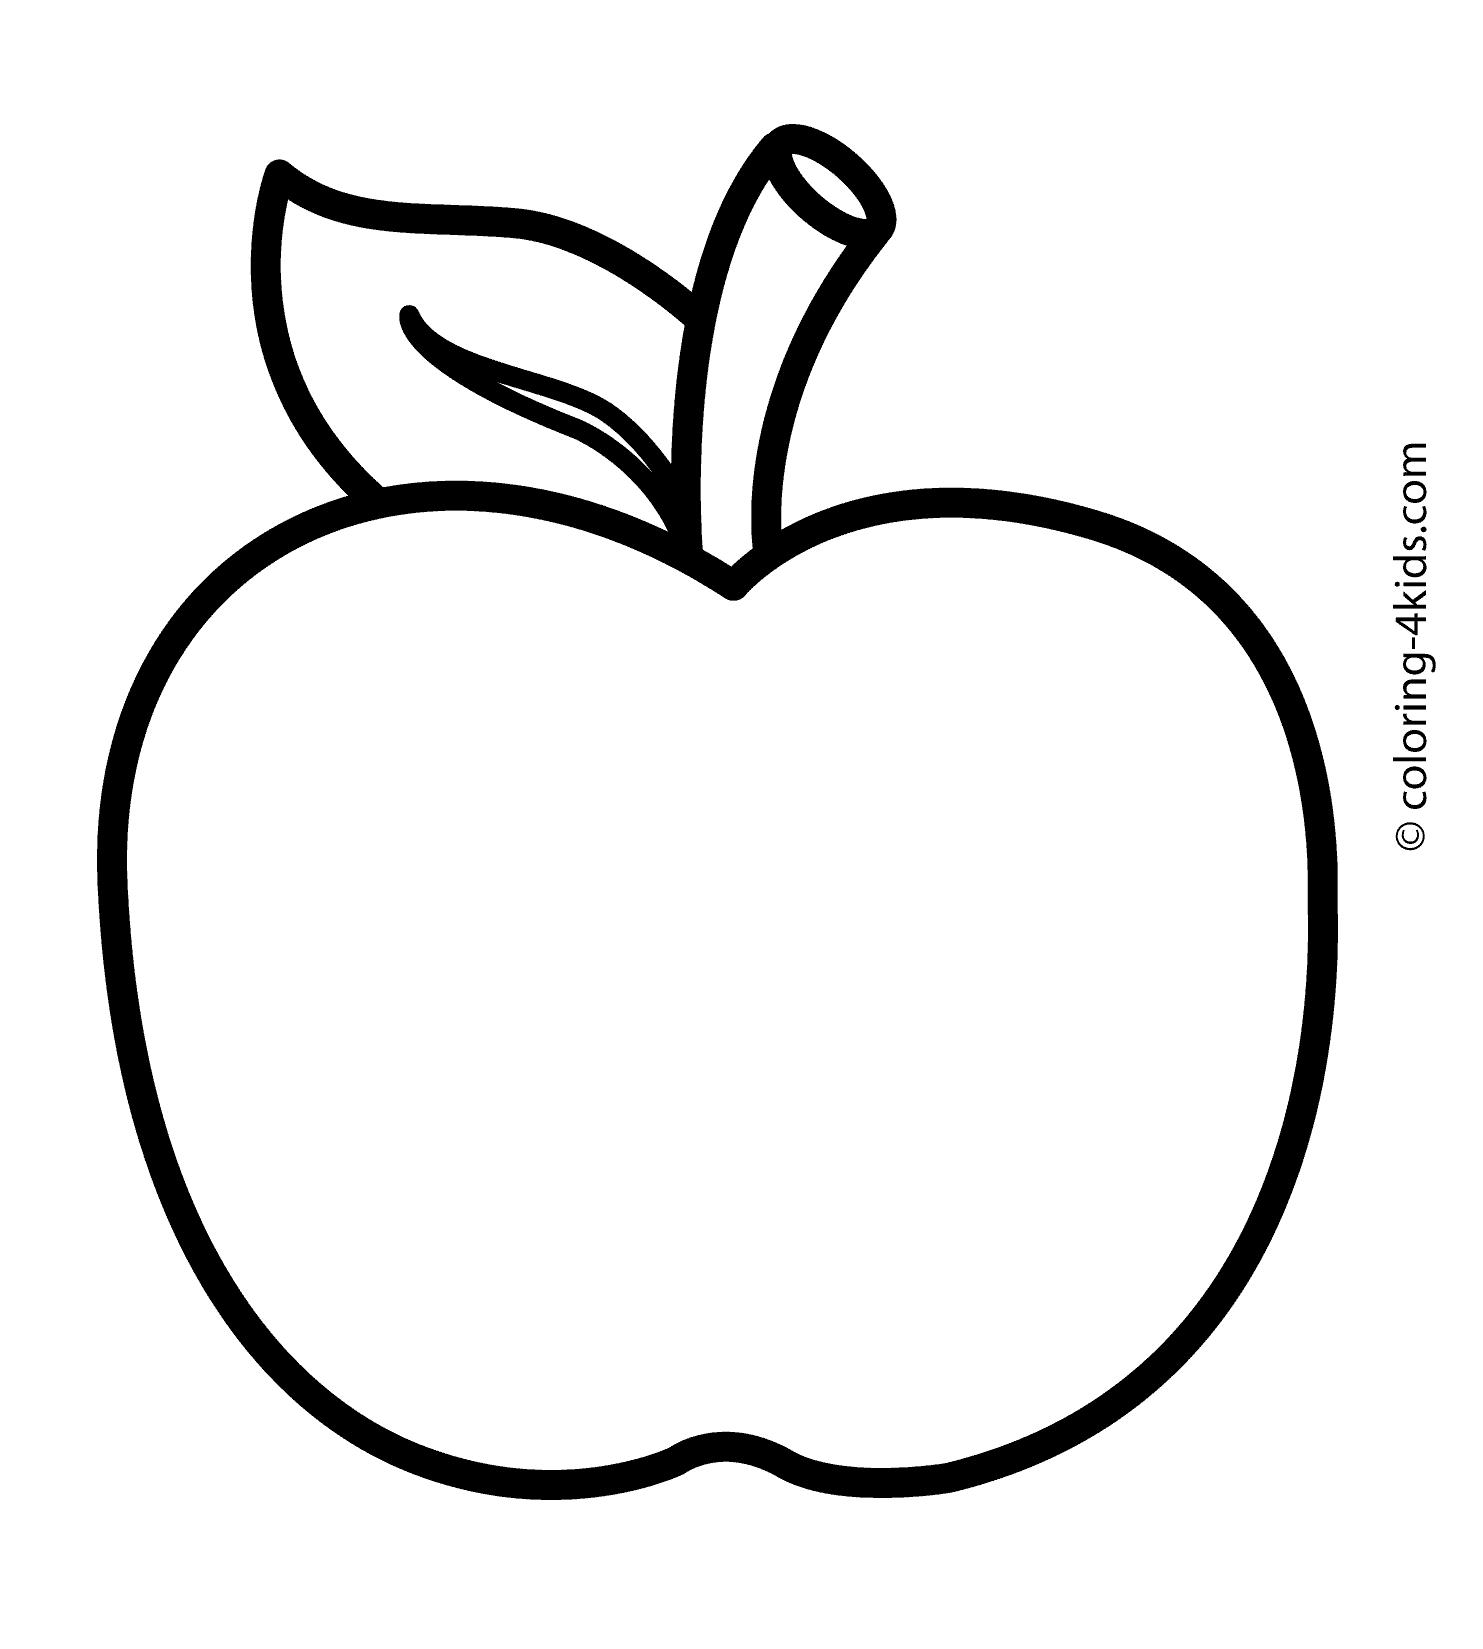 coloring picture of an apple apple coloring pages to print coloring apple picture of an